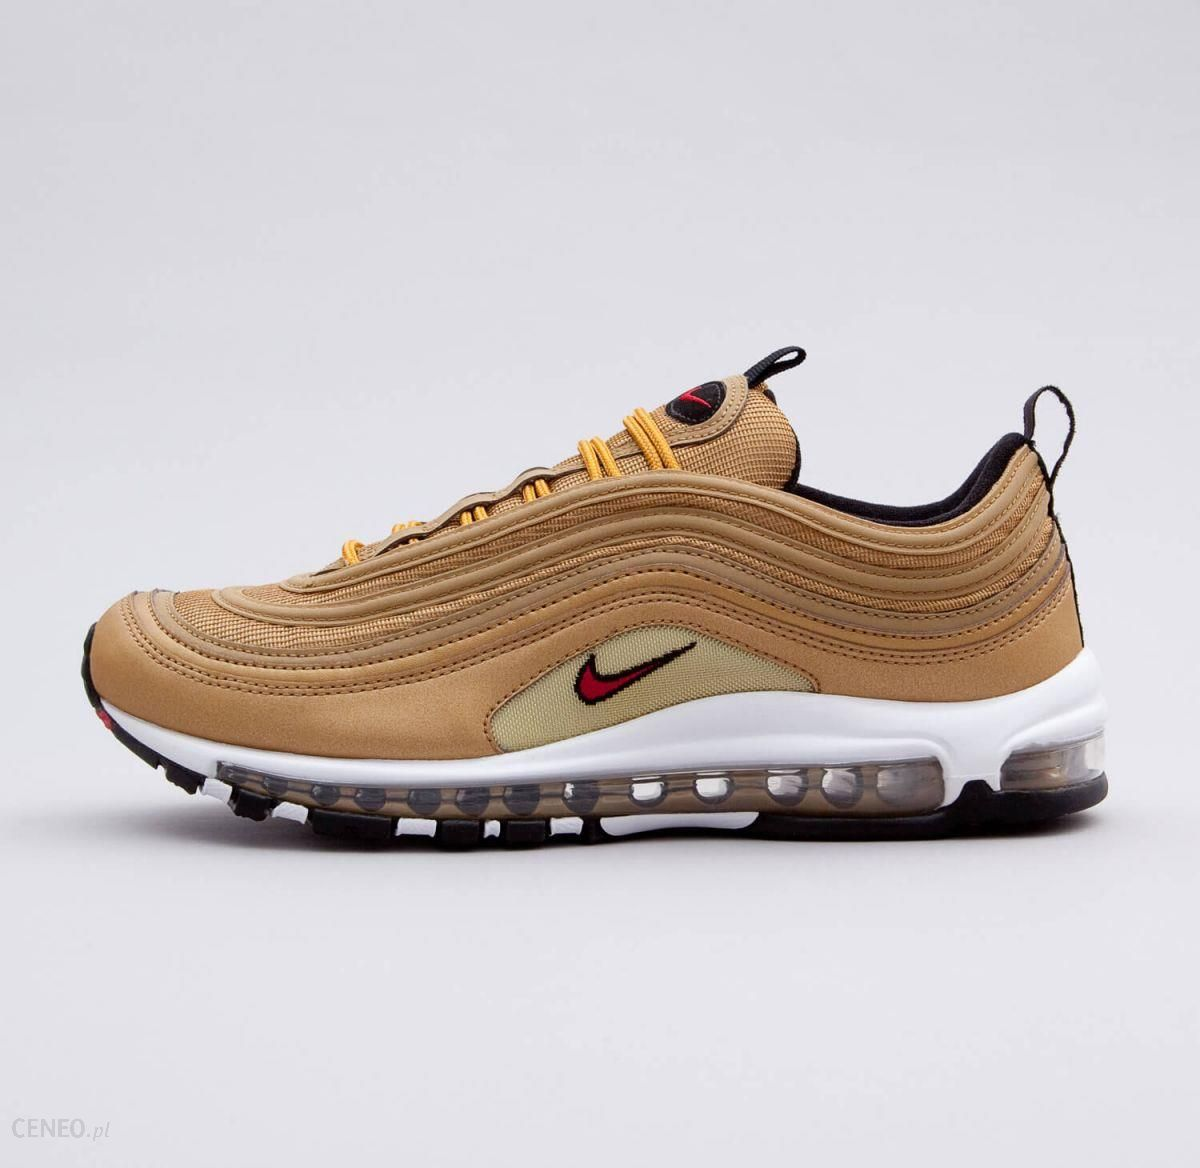 BUY Nike Air Max 97 Metallic Gold | Kixify Marketplace